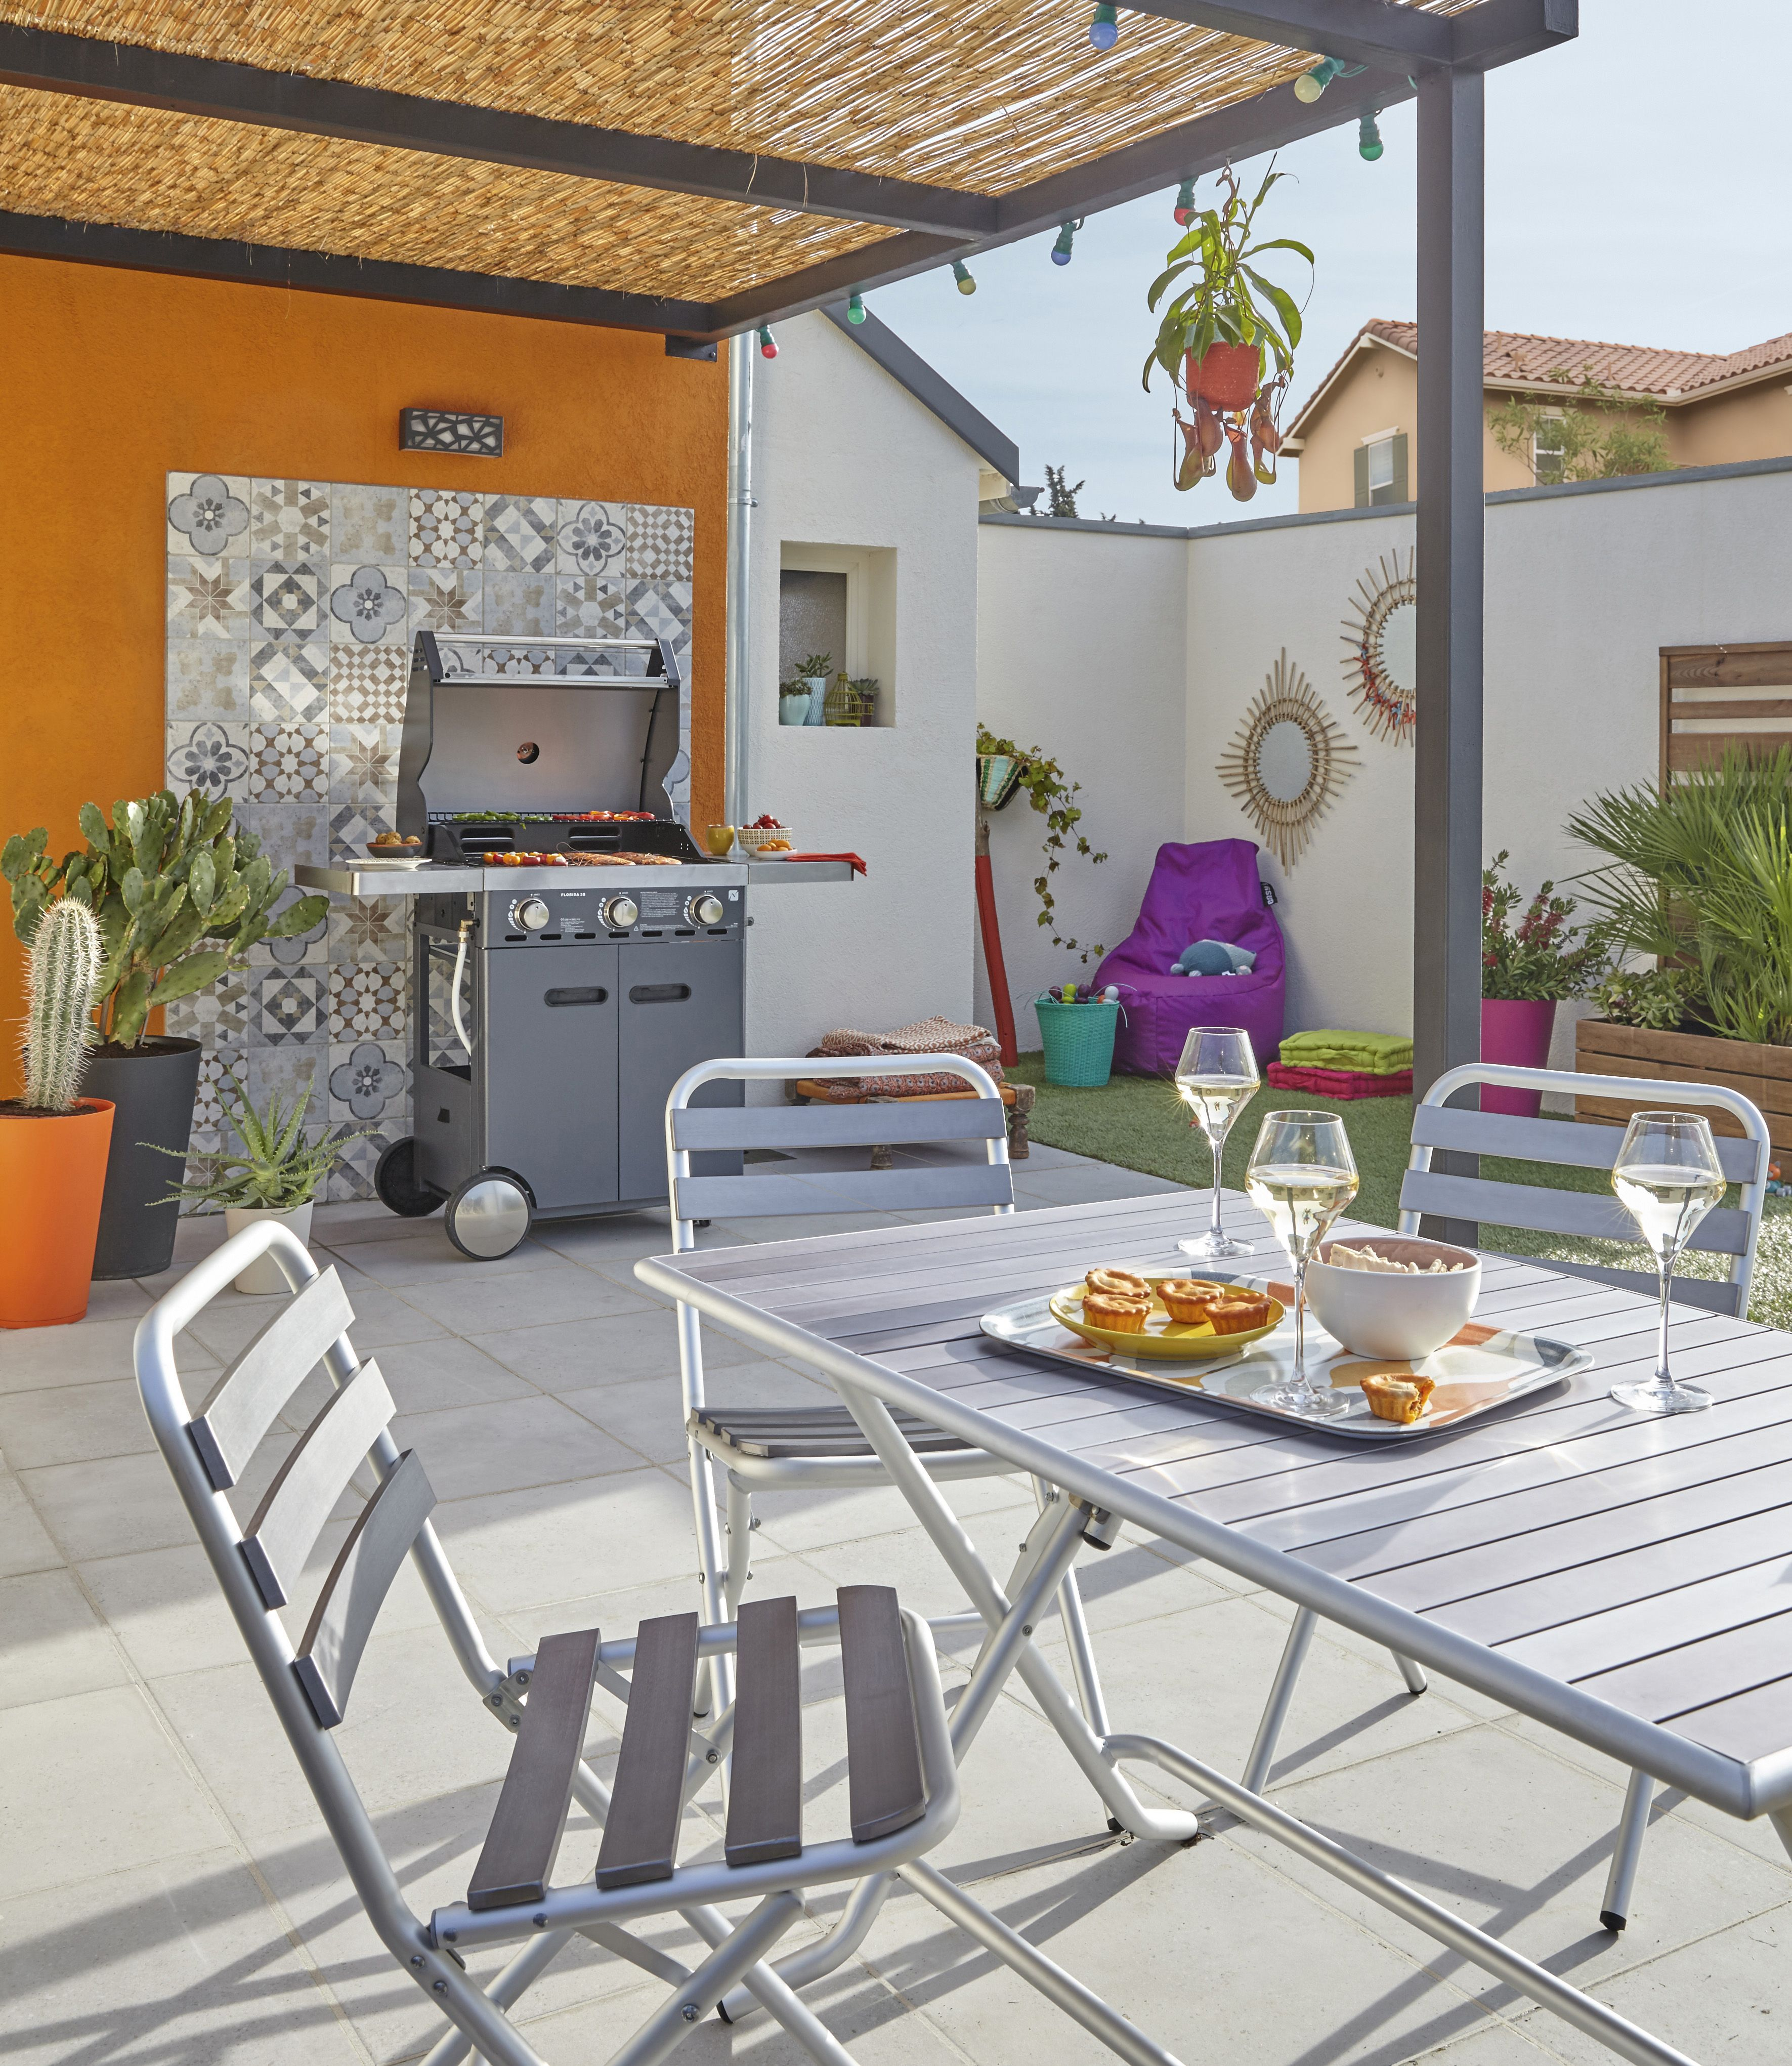 Terrasse d co et color e pour un ambiance vacance terrasse barbecue jardin outdoors and - Decoration jardin barbecue ...